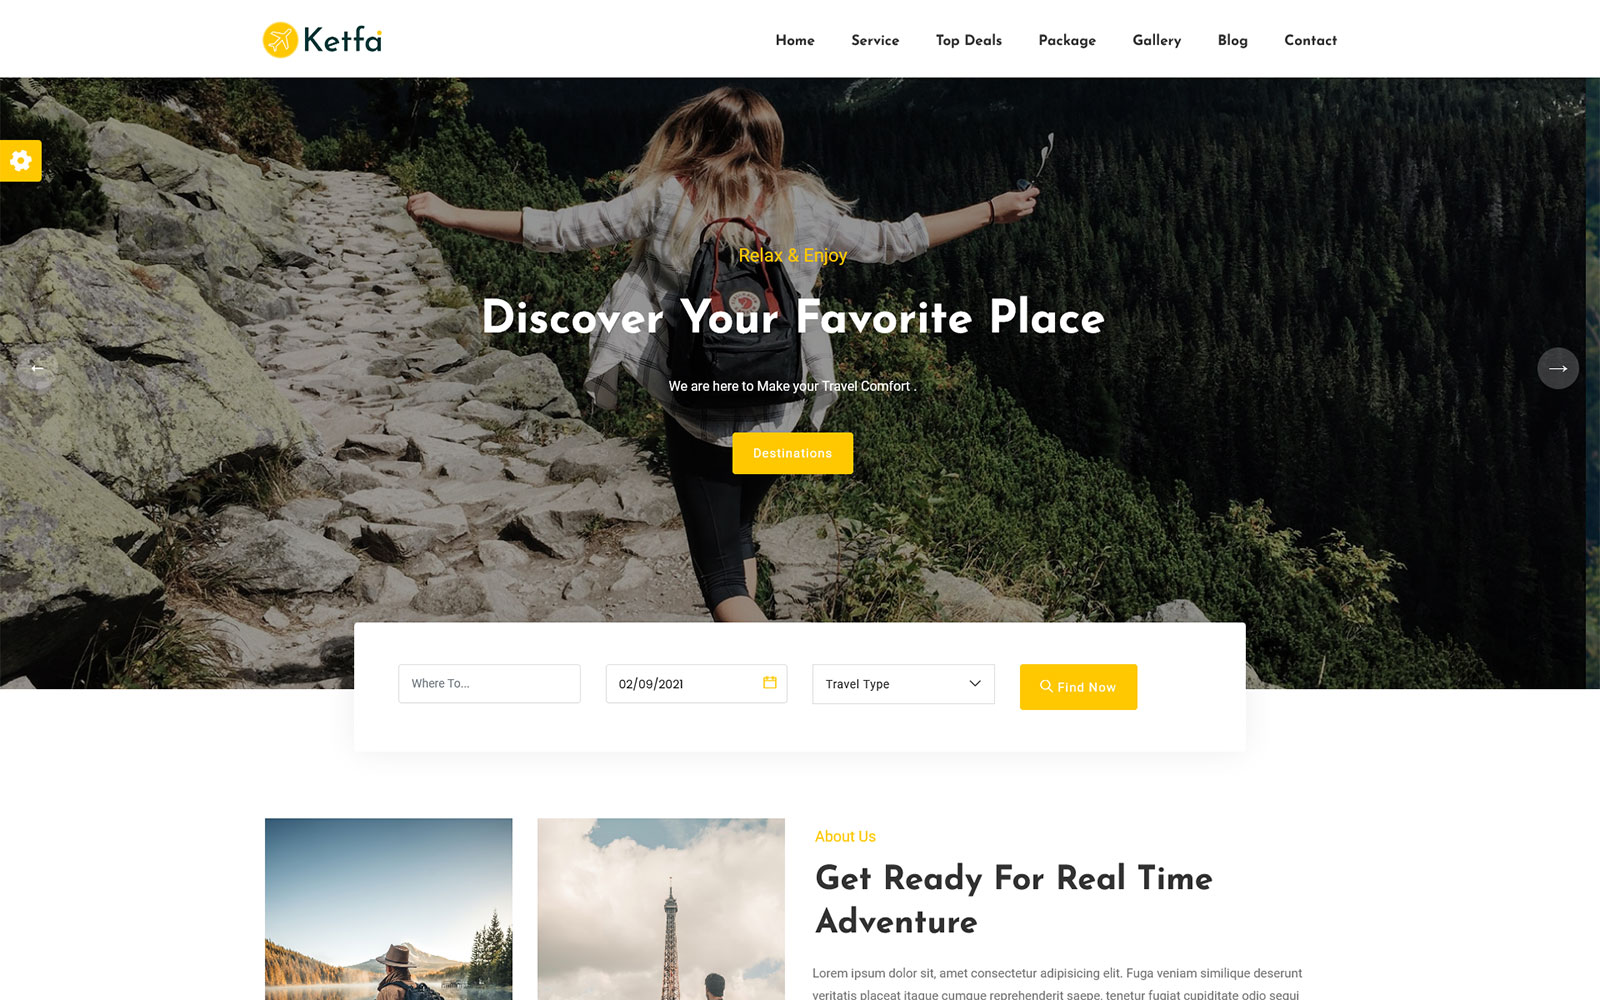 Ketfa - Tour and Travel Agency Landing Page Template